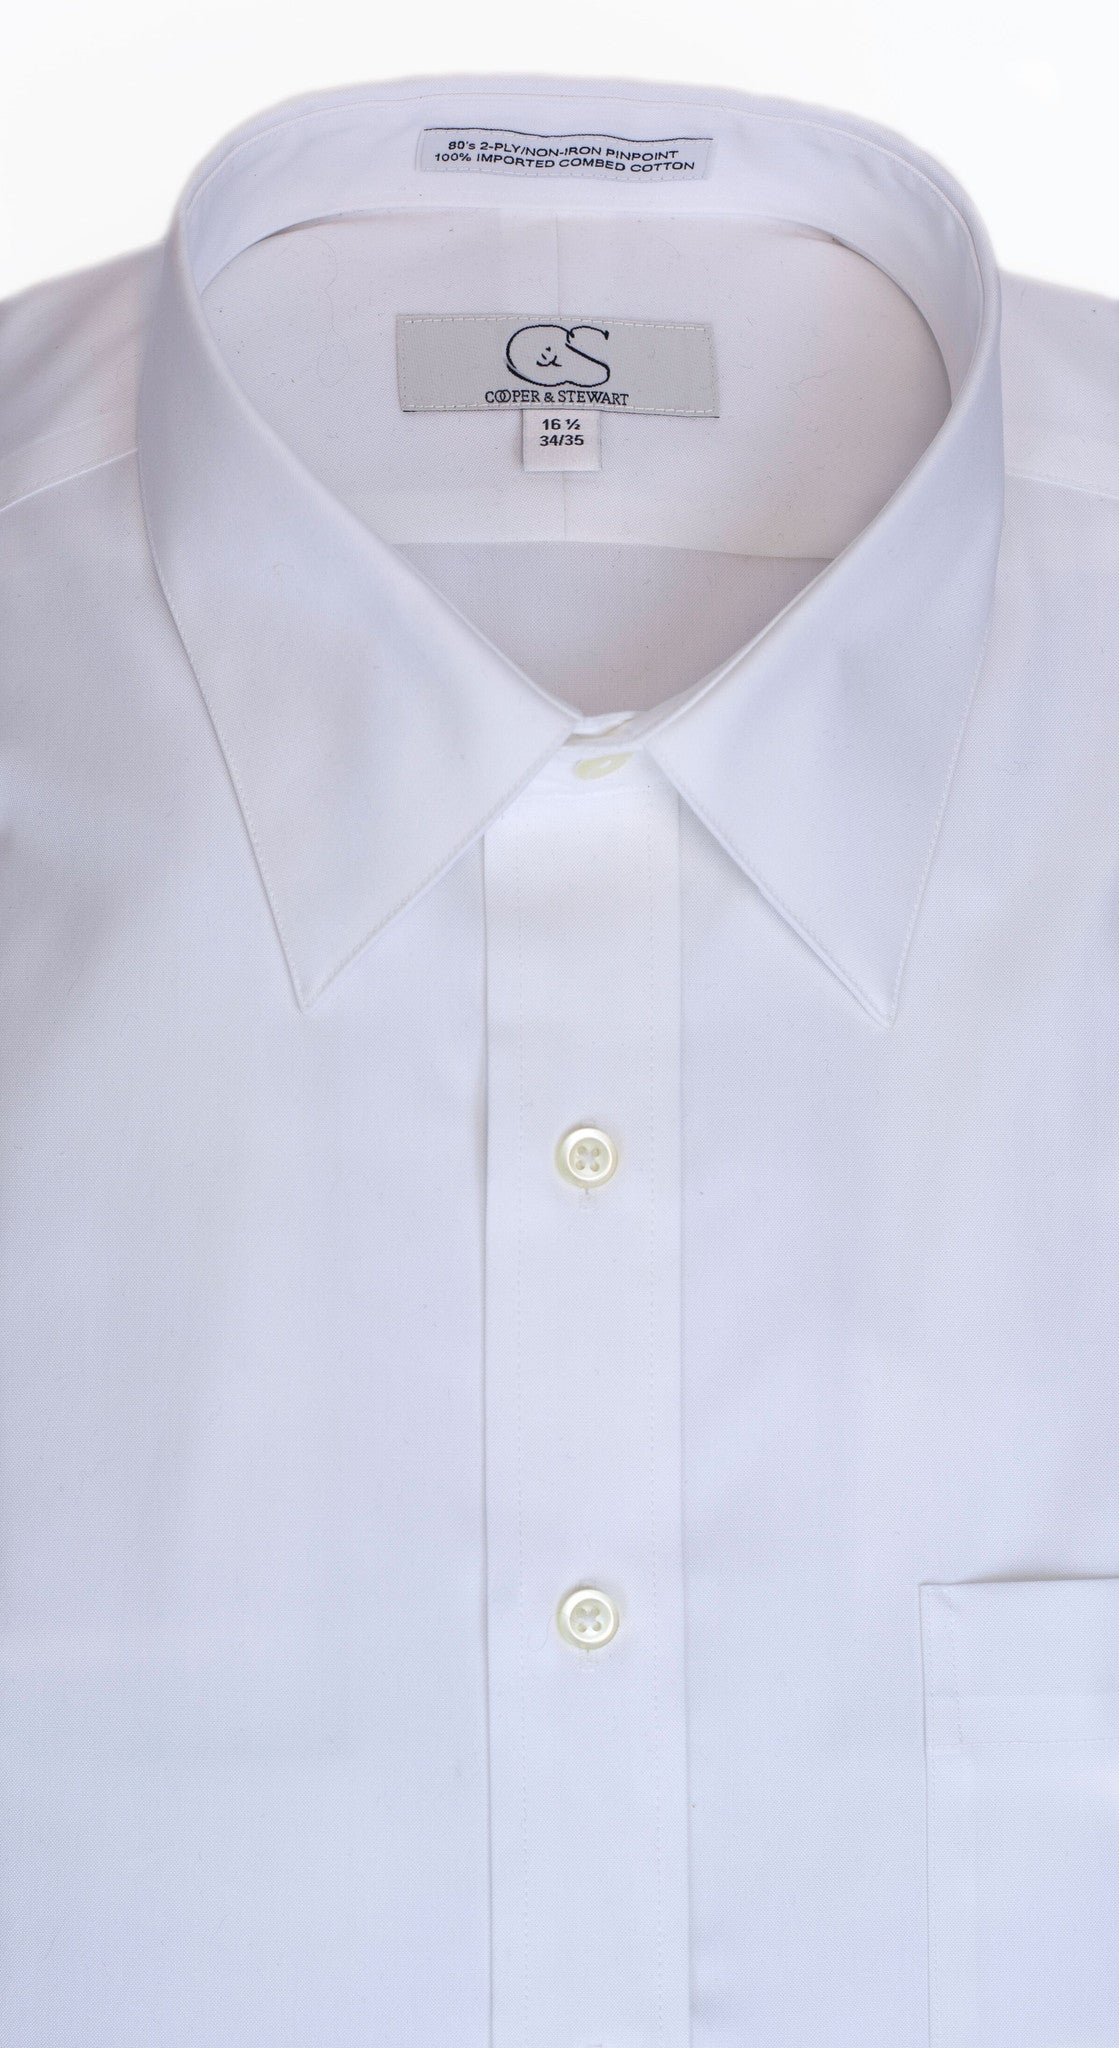 Cooper & Stewart Non Iron Dress Shirt - Parker's Clothing & Gifts